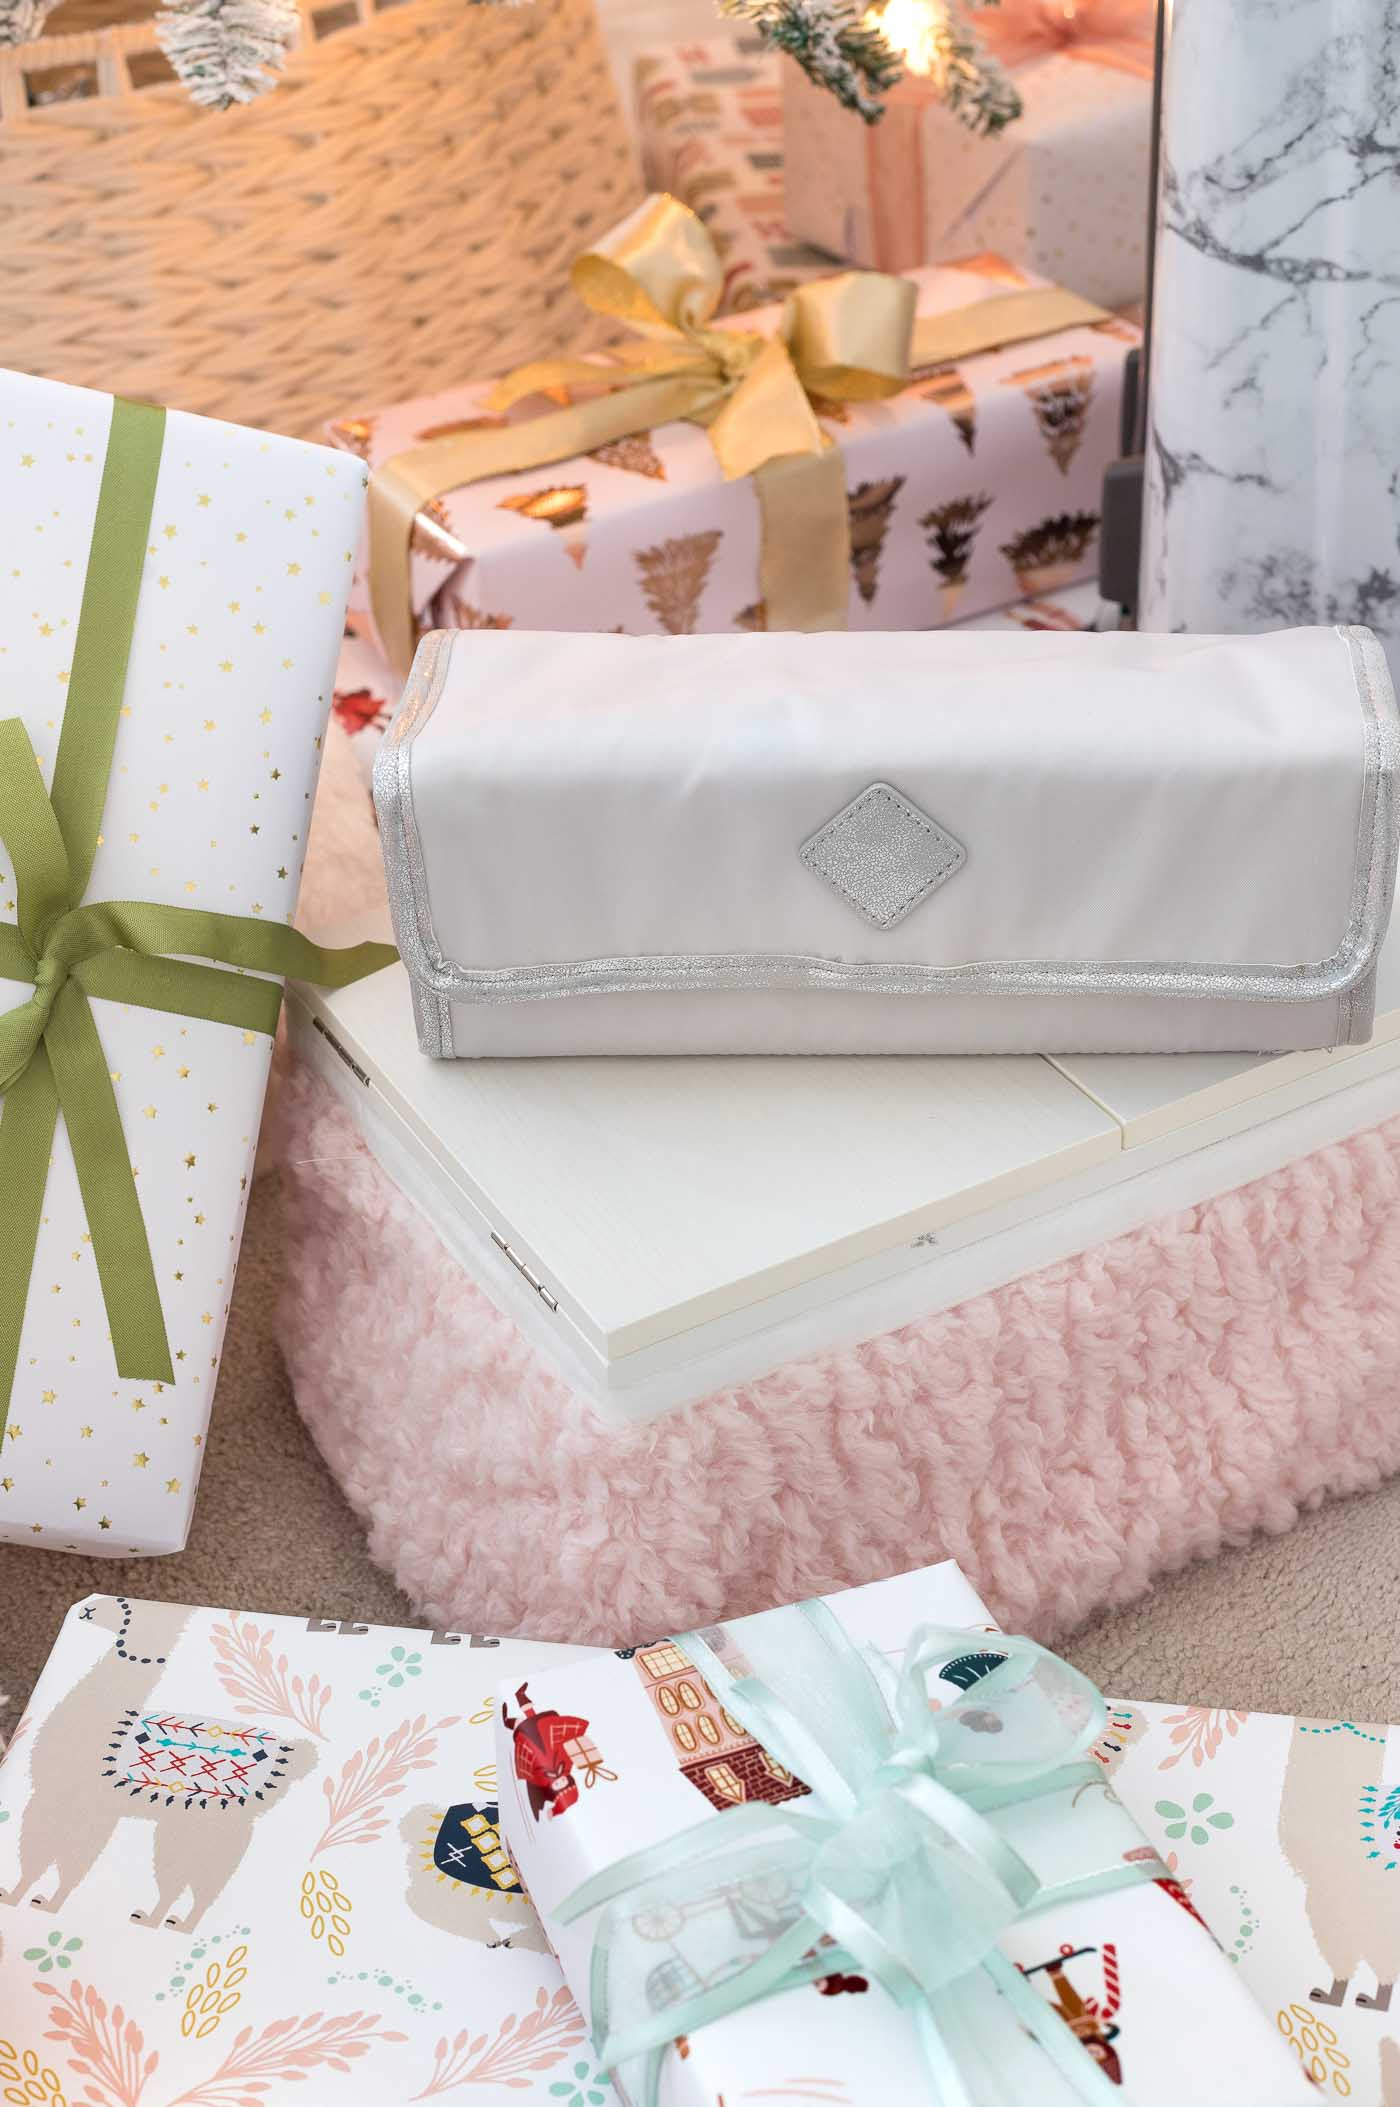 Super cute toiletry bag that rolls up for easy storage and travel!